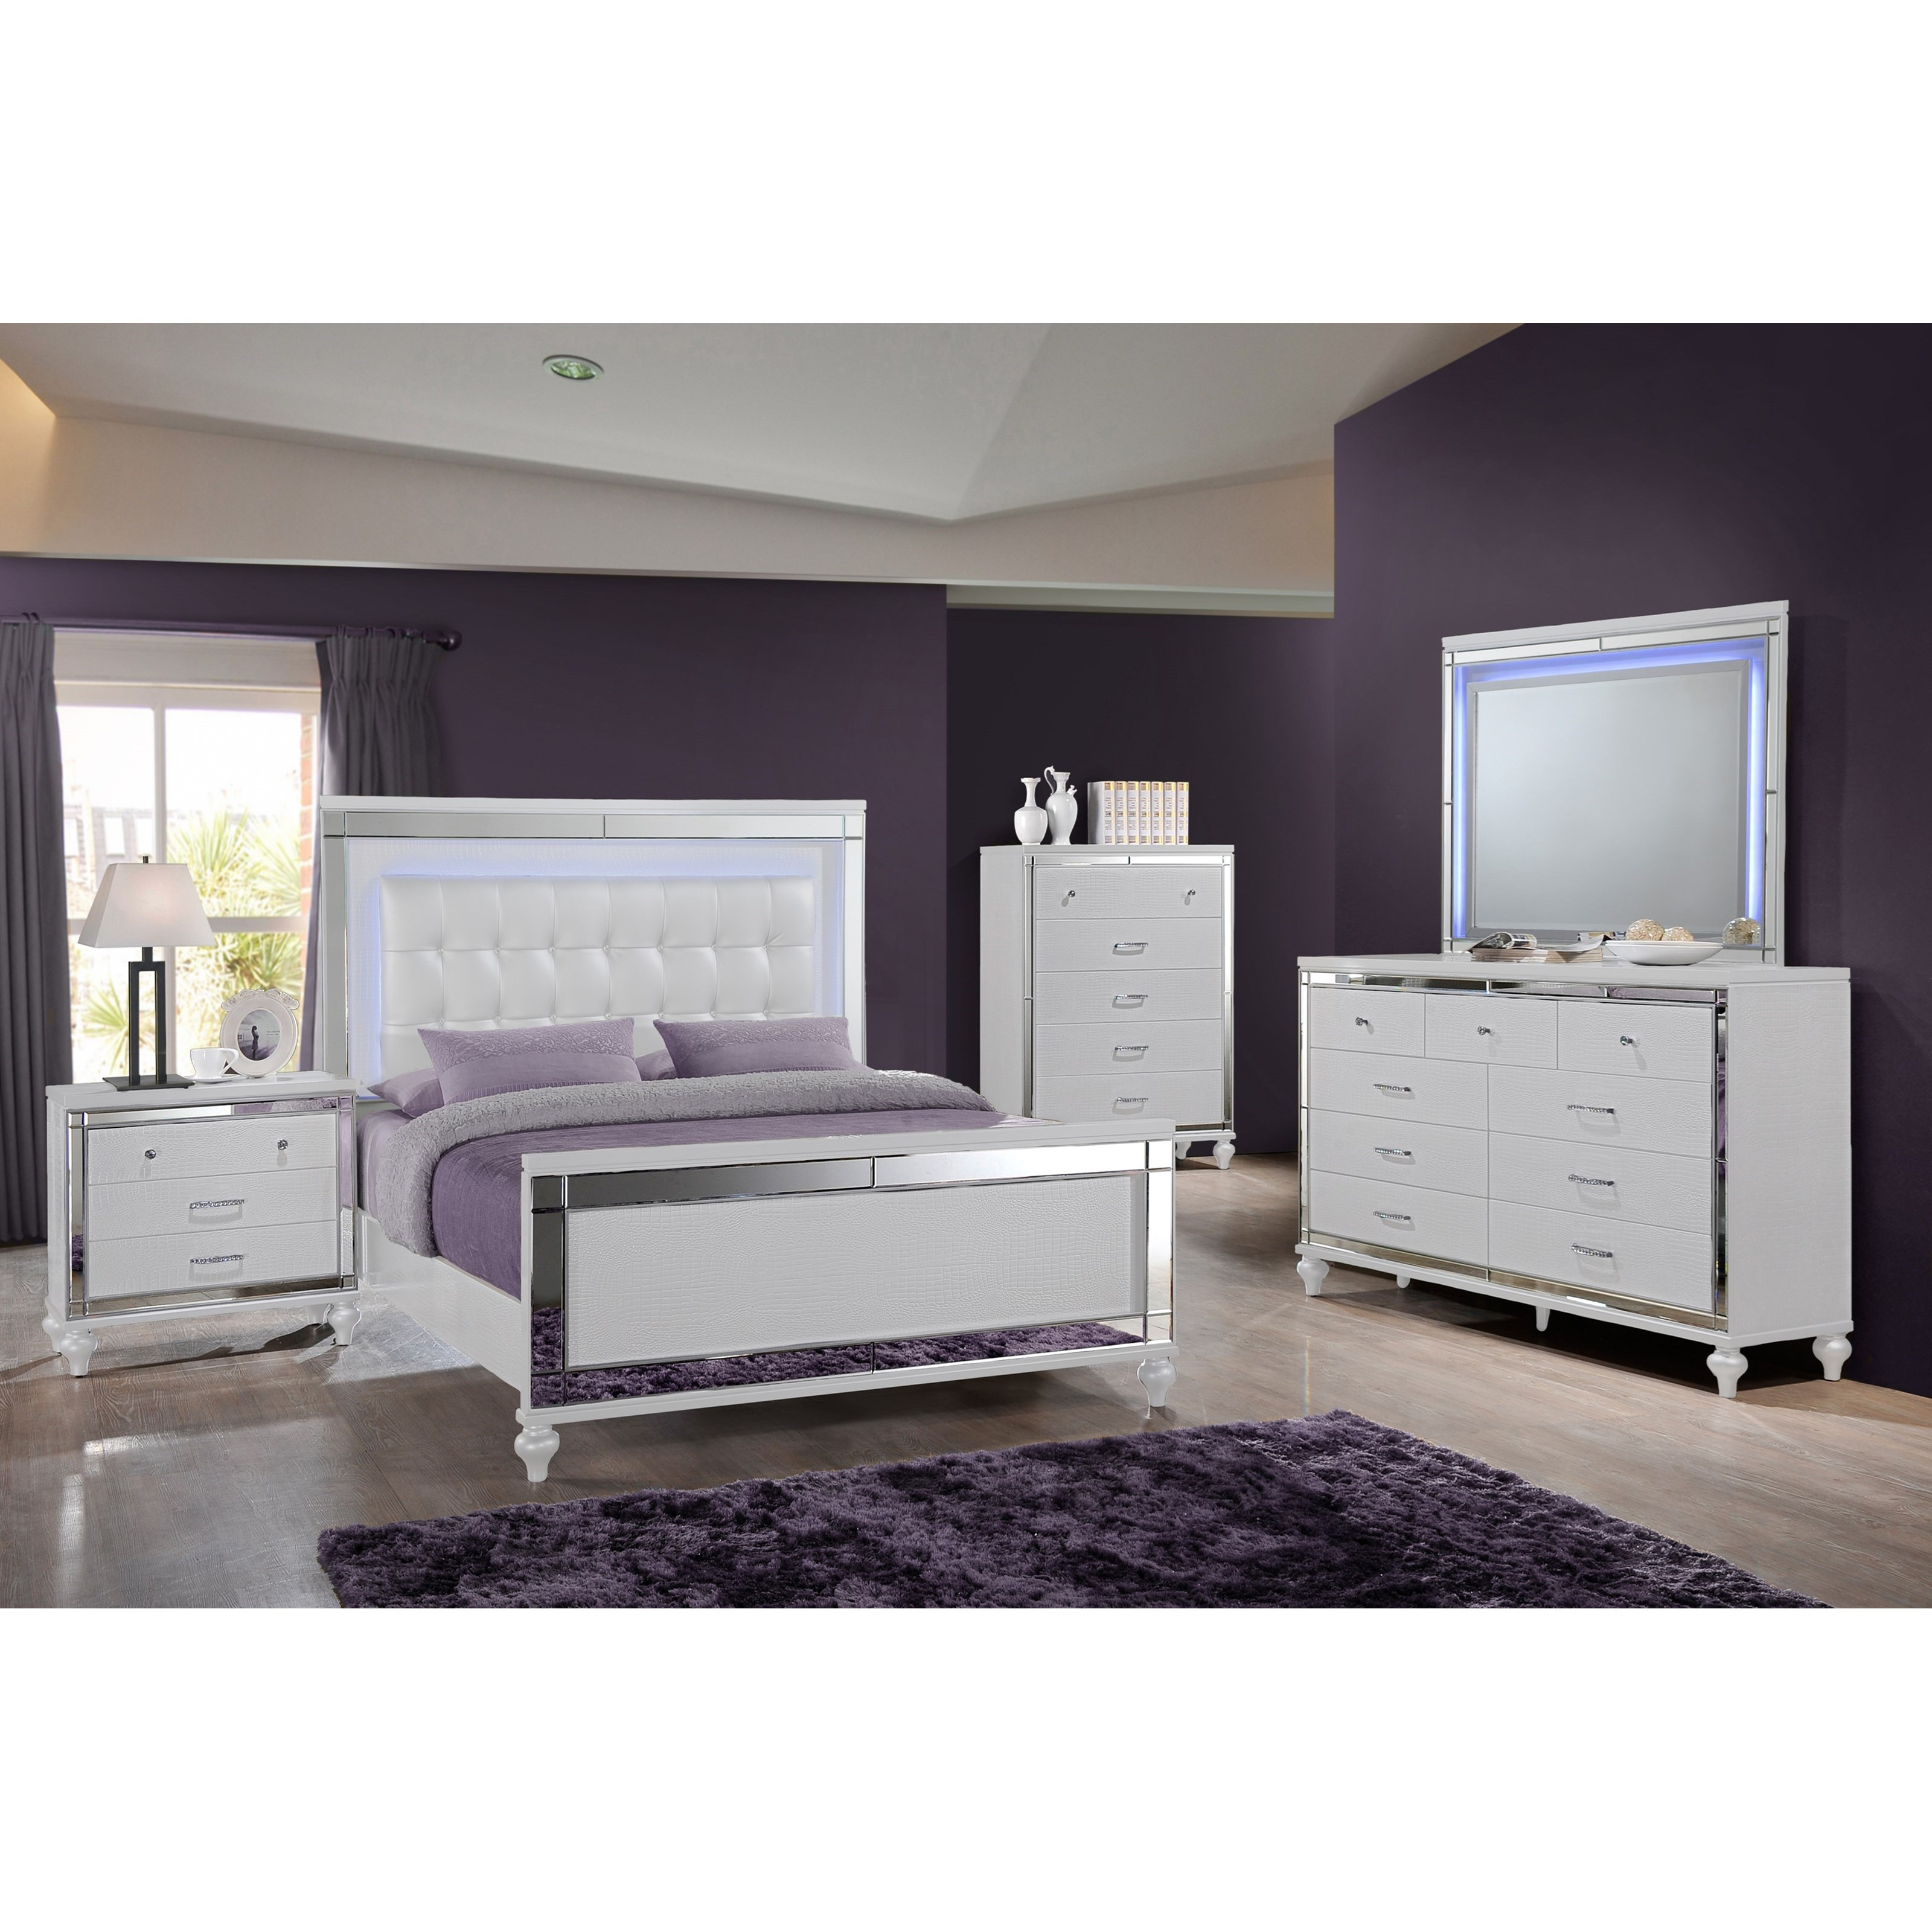 Valentino Queen Bedroom Group by New Classic at Carolina Direct